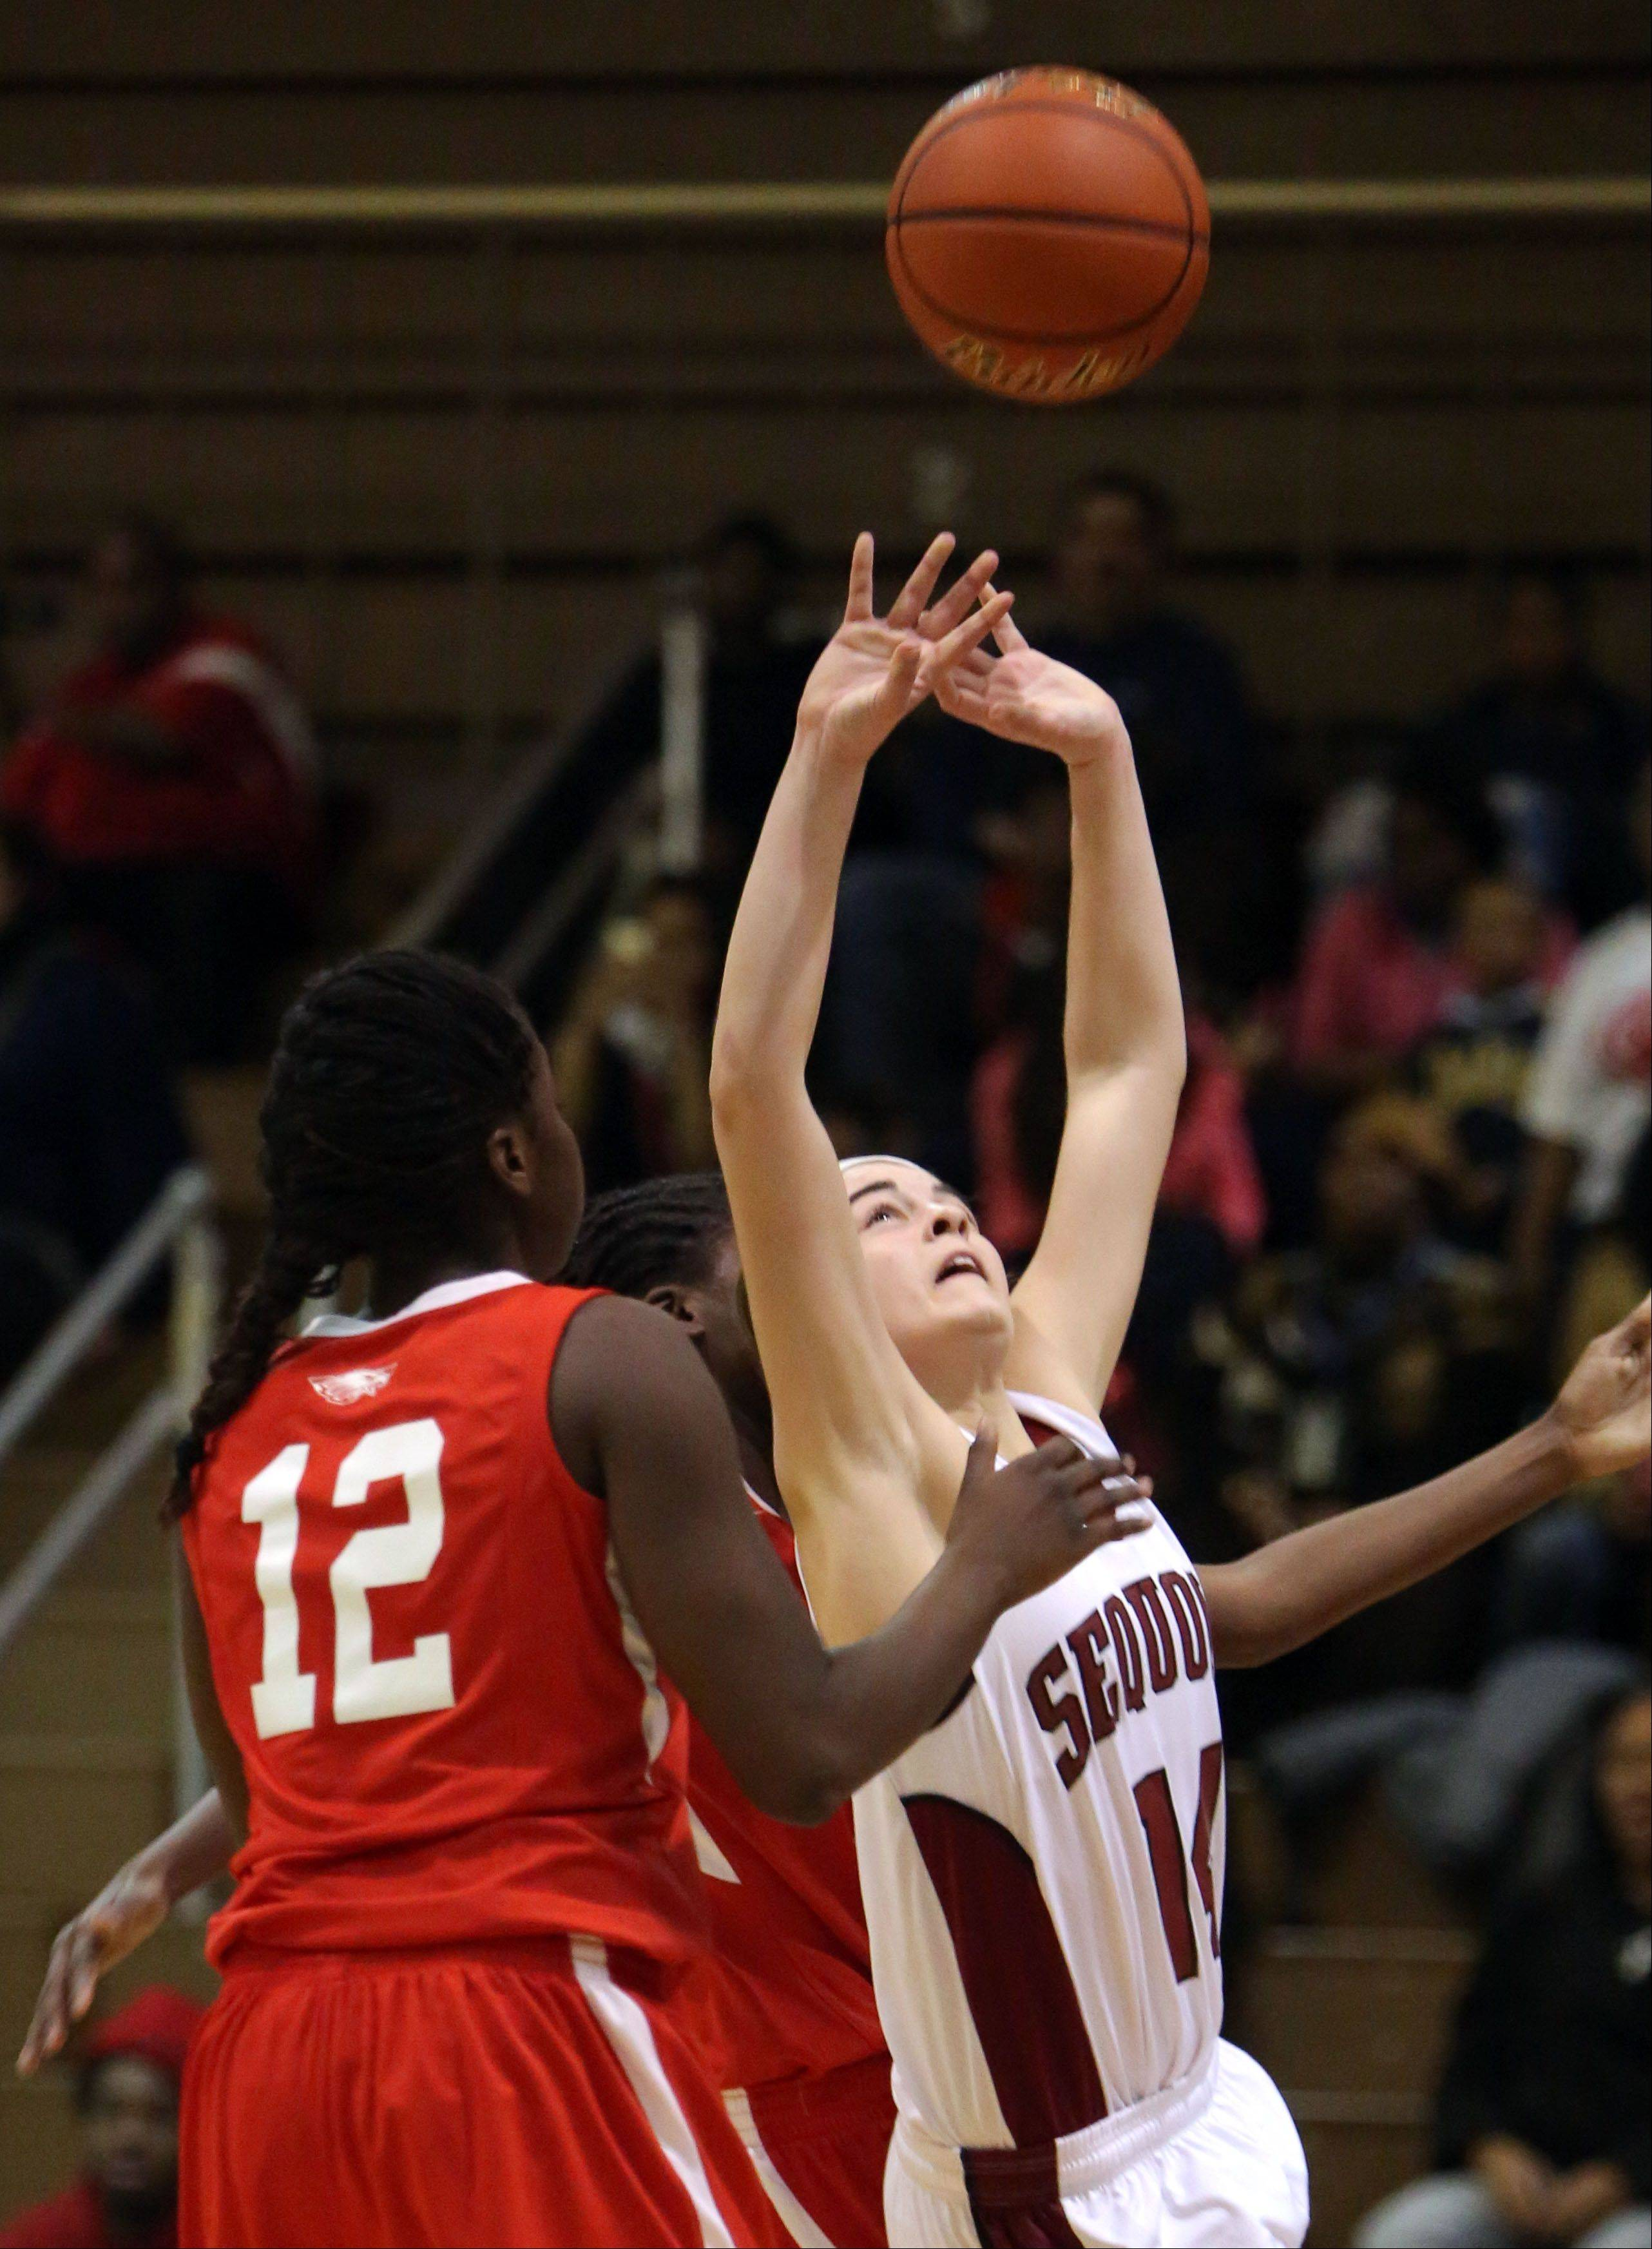 Antioch's Amy Reiser, right, shoots over North Chicago's Kylah Collins.